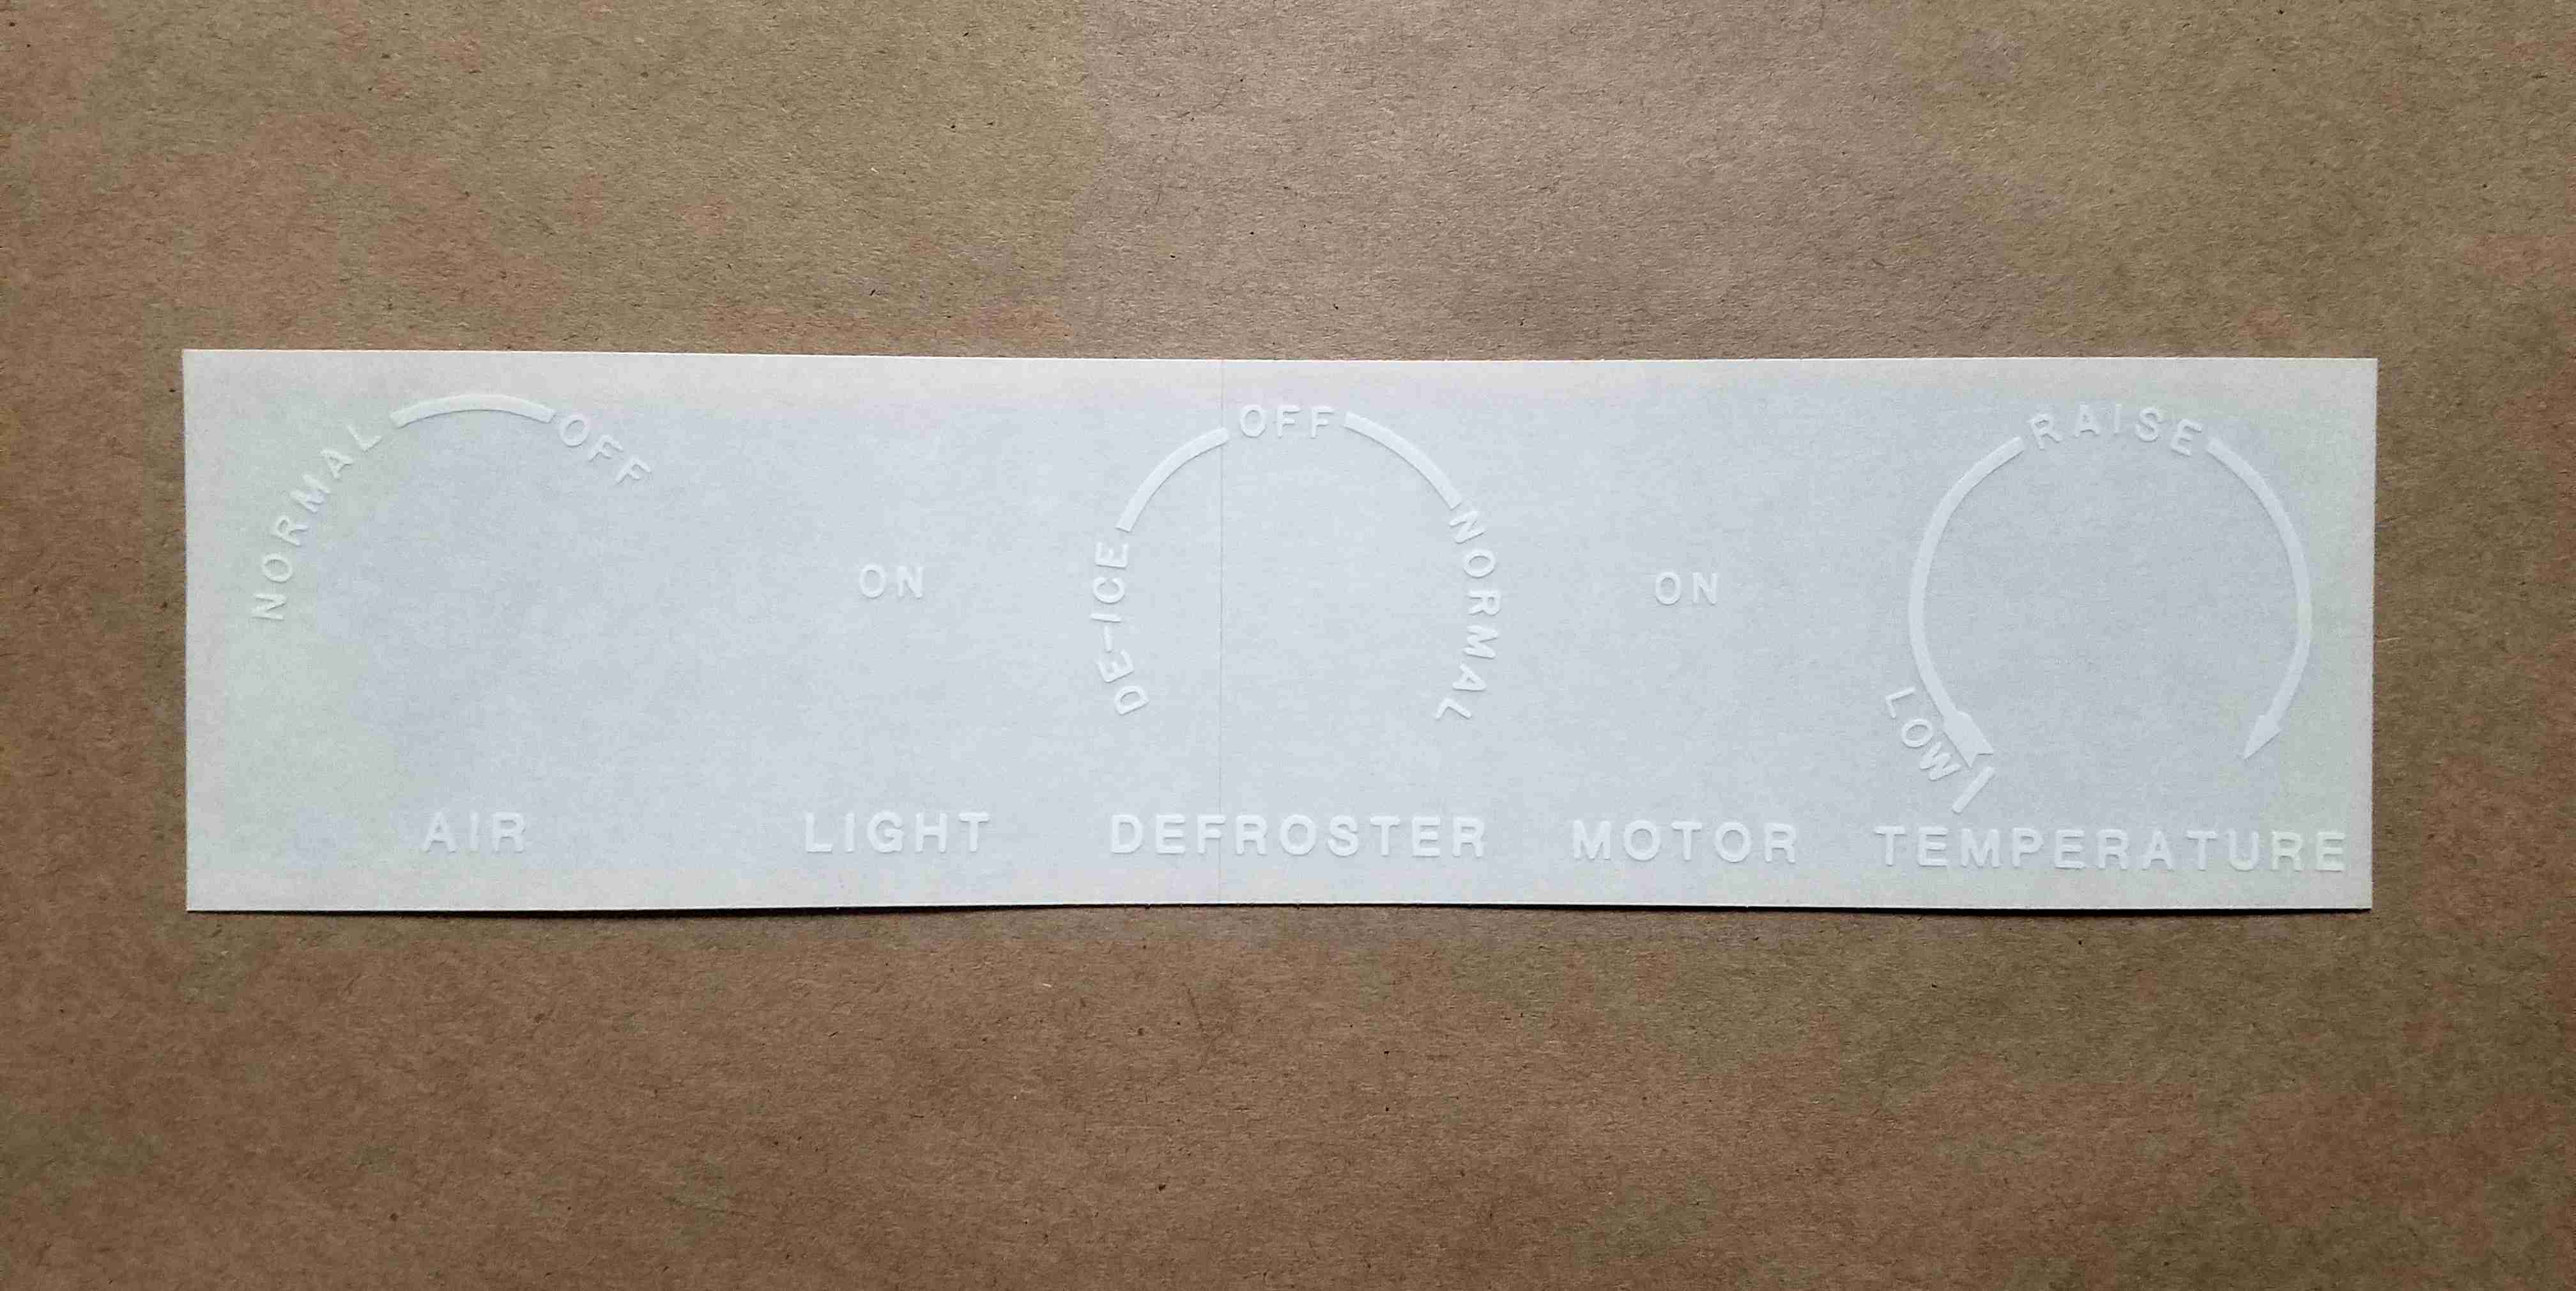 1948 White Heater Control Panel Decal